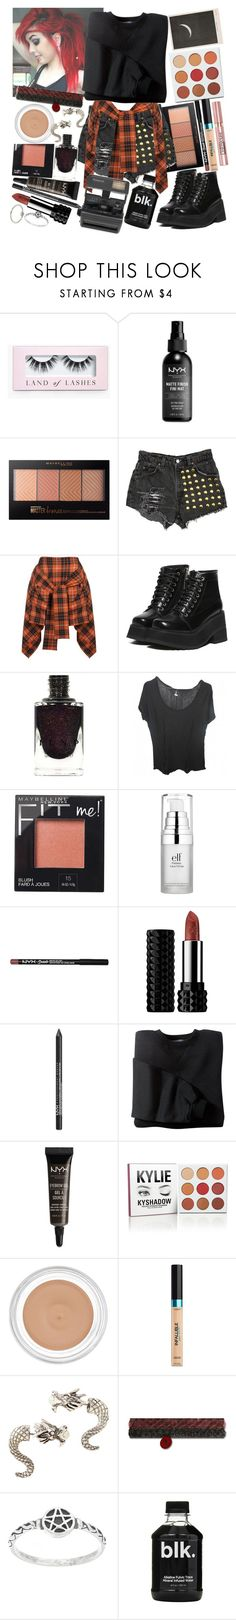 """Captivated when you say my name, but you make me wait. I'm only trying to make you melt & have you all to myself."" by thelyricsmatter ❤ liked on Polyvore featuring Boohoo, NYX, Maybelline, Levi's, Vivienne Westwood Anglomania, Zadig & Voltaire, e.l.f., Kat Von D, L'Oréal Paris and Hot Topic"